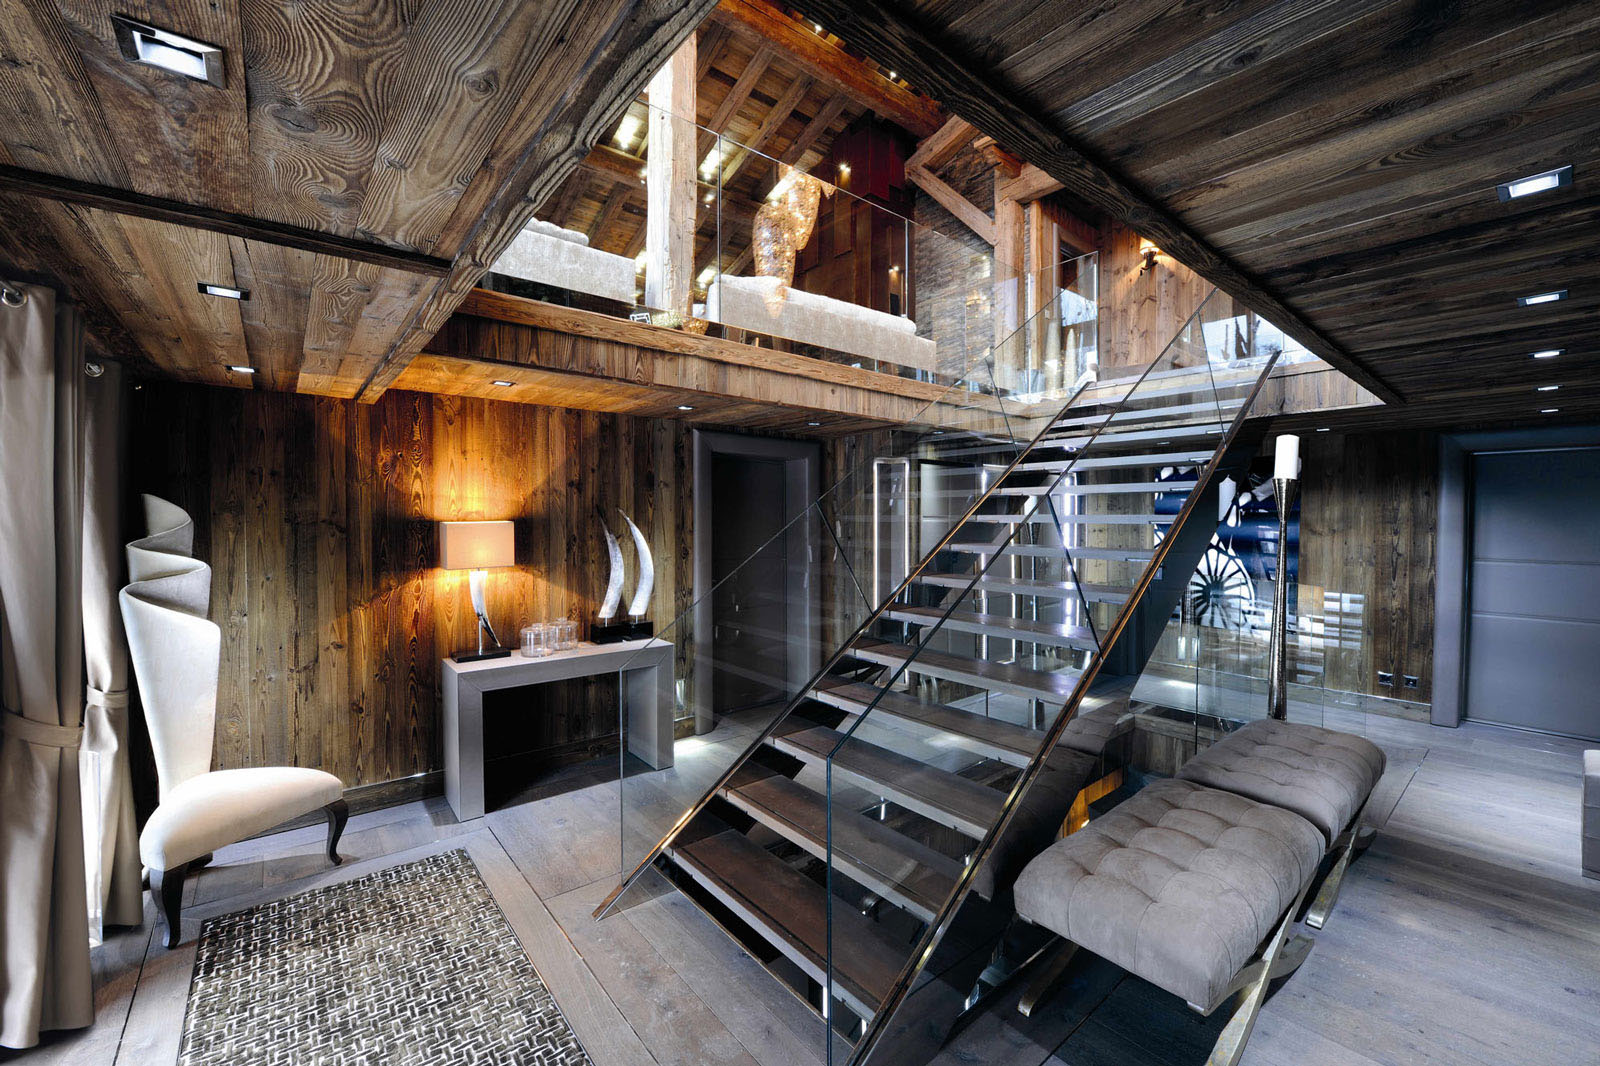 Chic Modern Rustic Chalet In The Rh Ne Alpes Idesignarch Interior Design Architecture